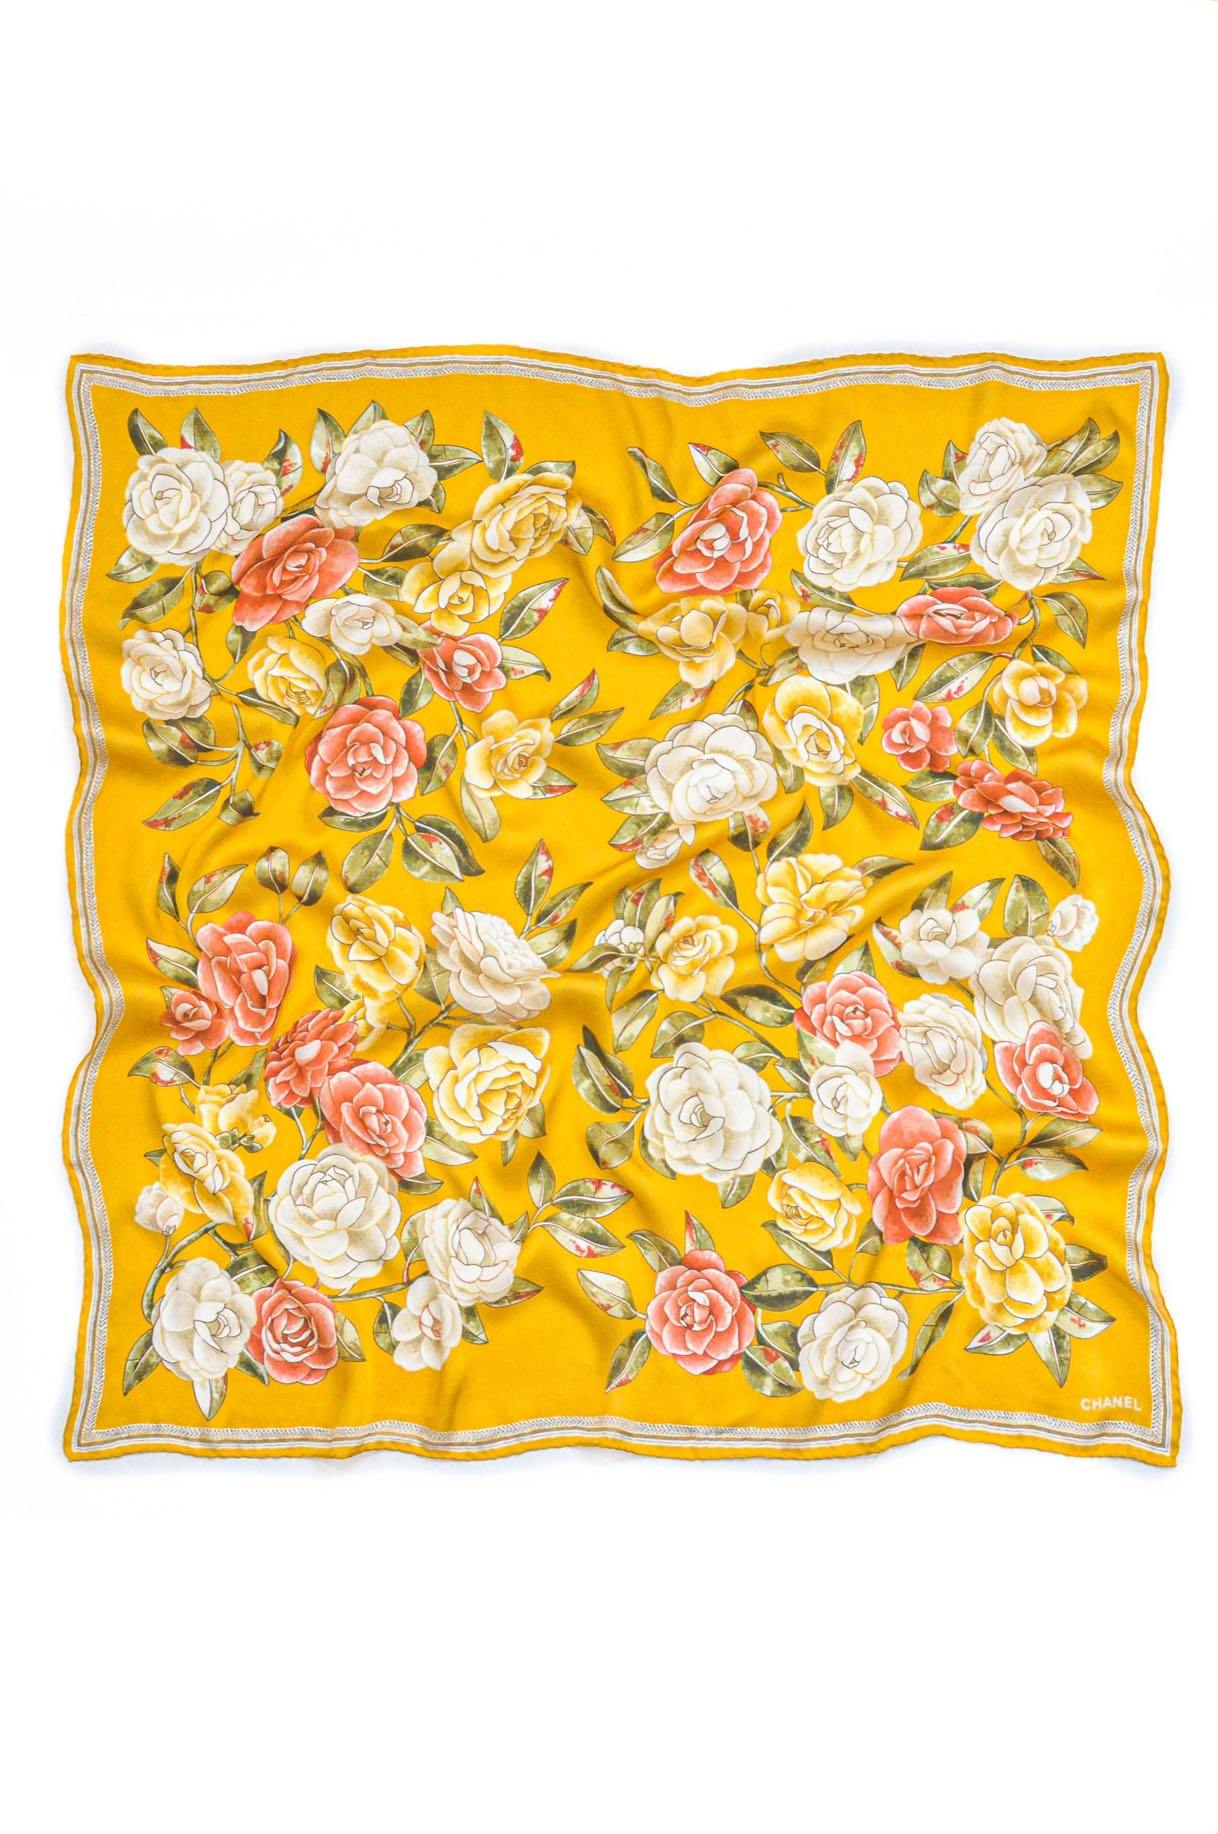 Vintage Chanel Orange Camellia Scarf from Sweet and Spark